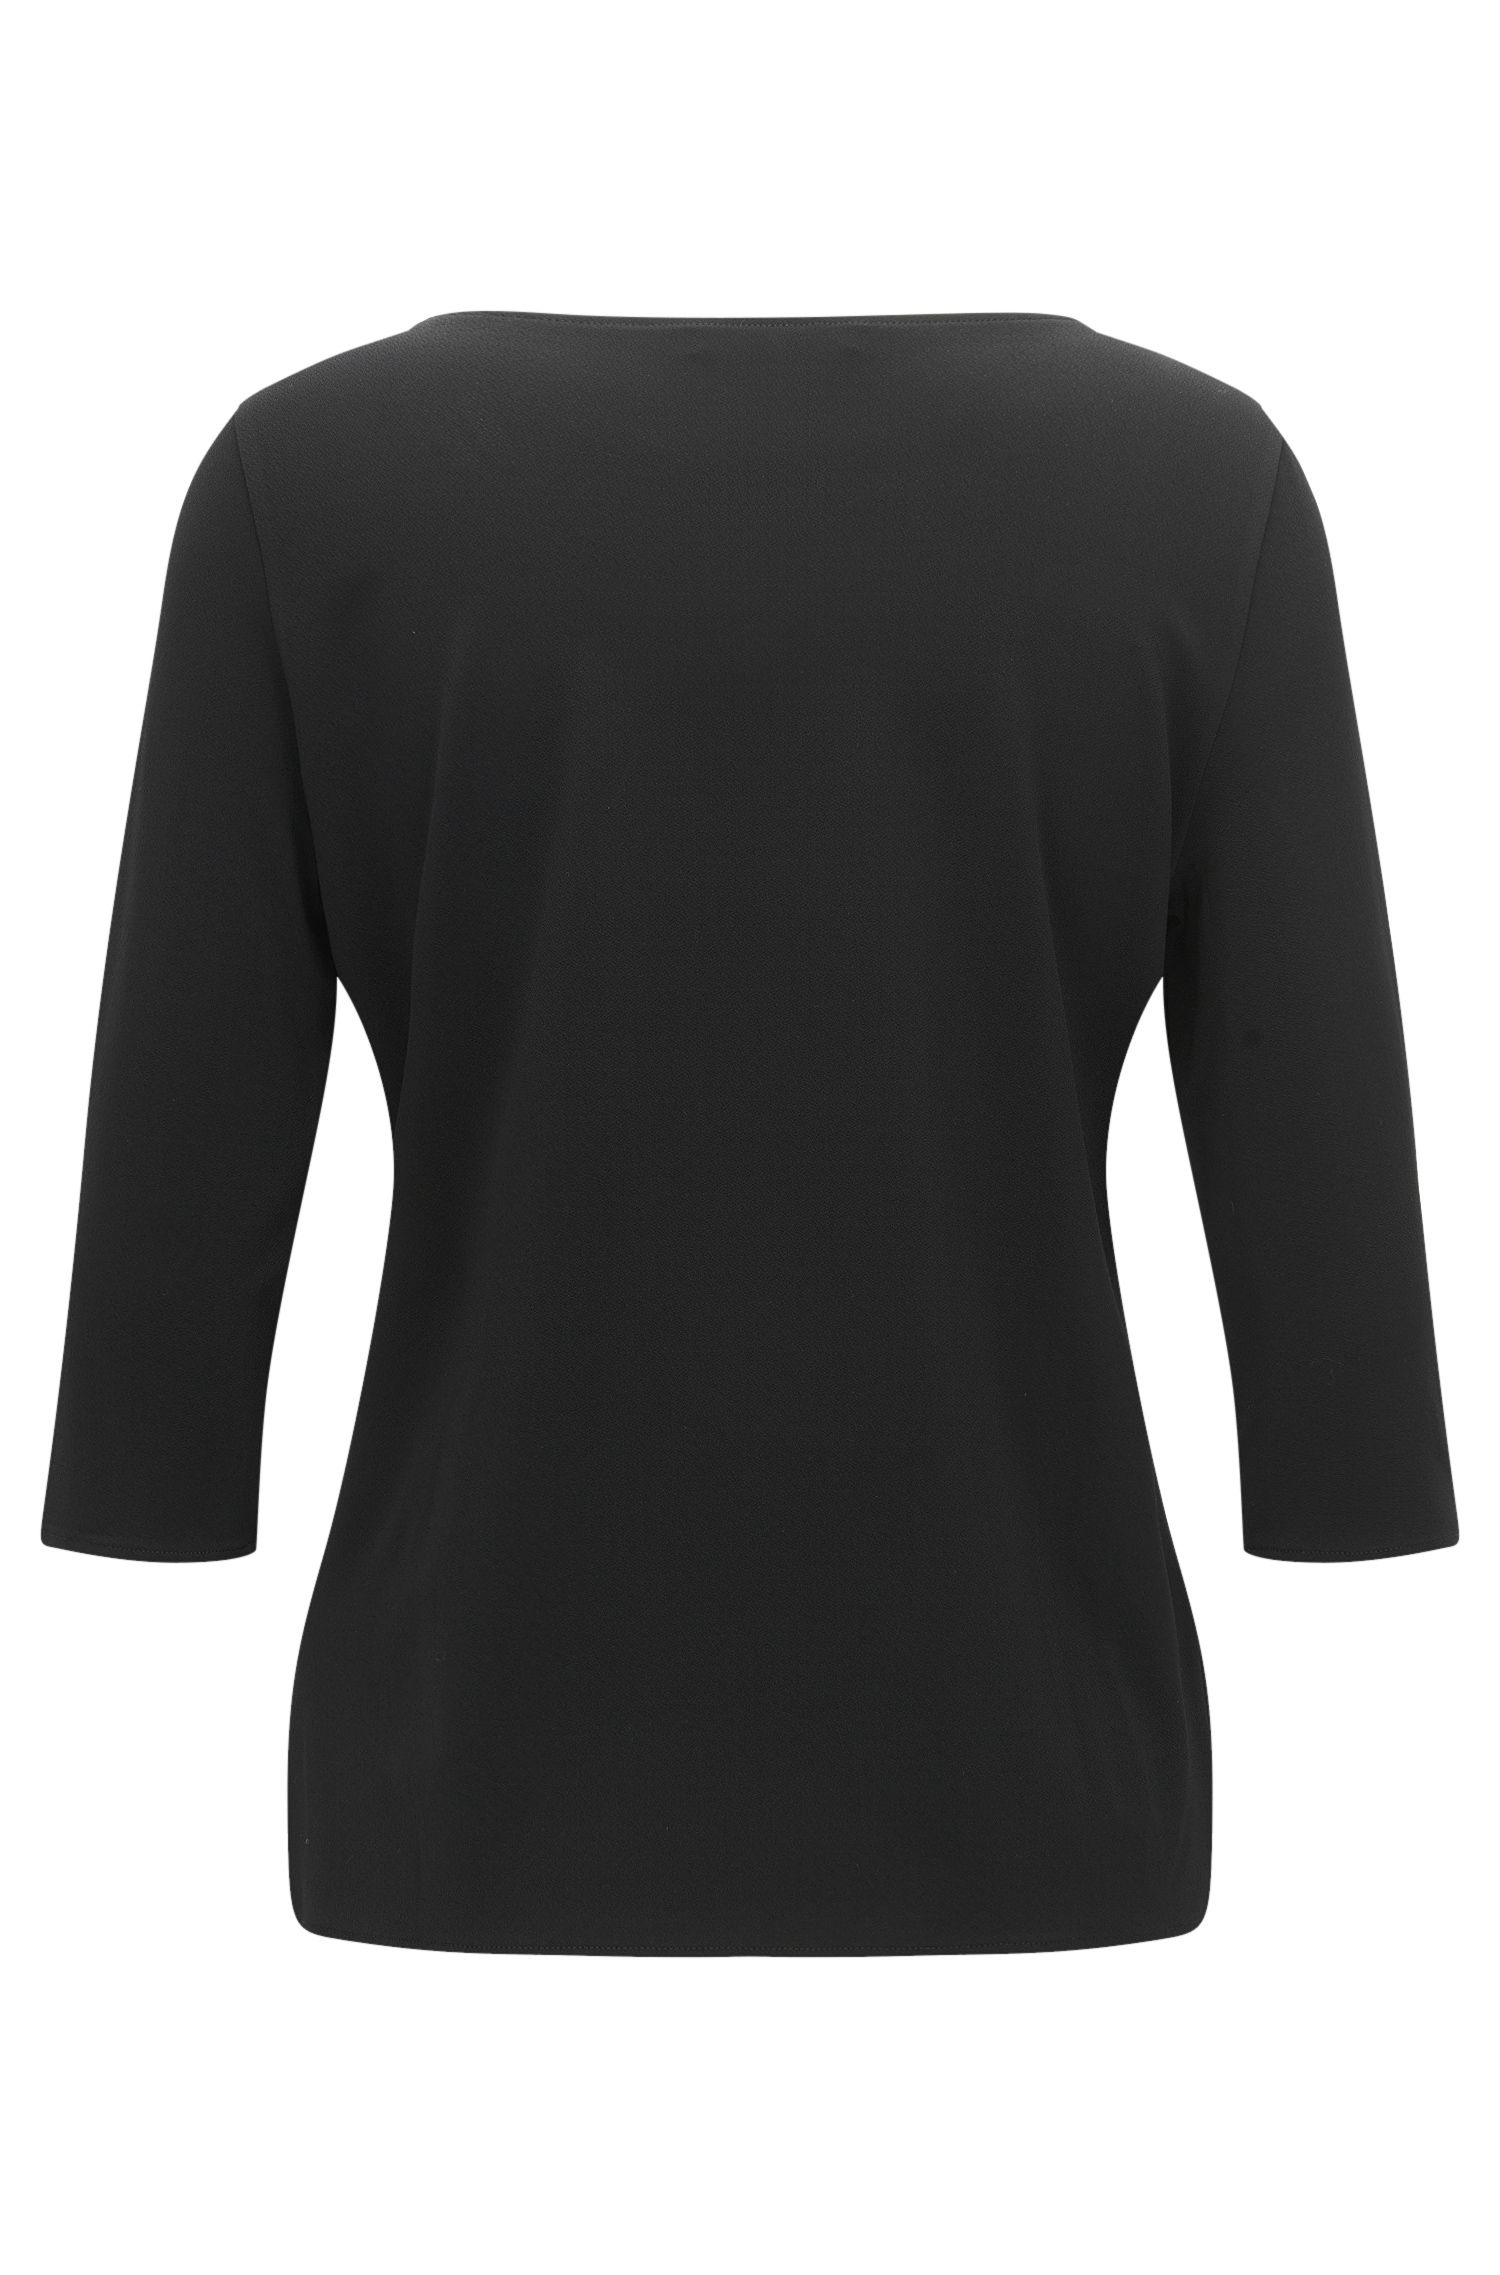 Regular-fit top in stretch crêpe jersey, Black